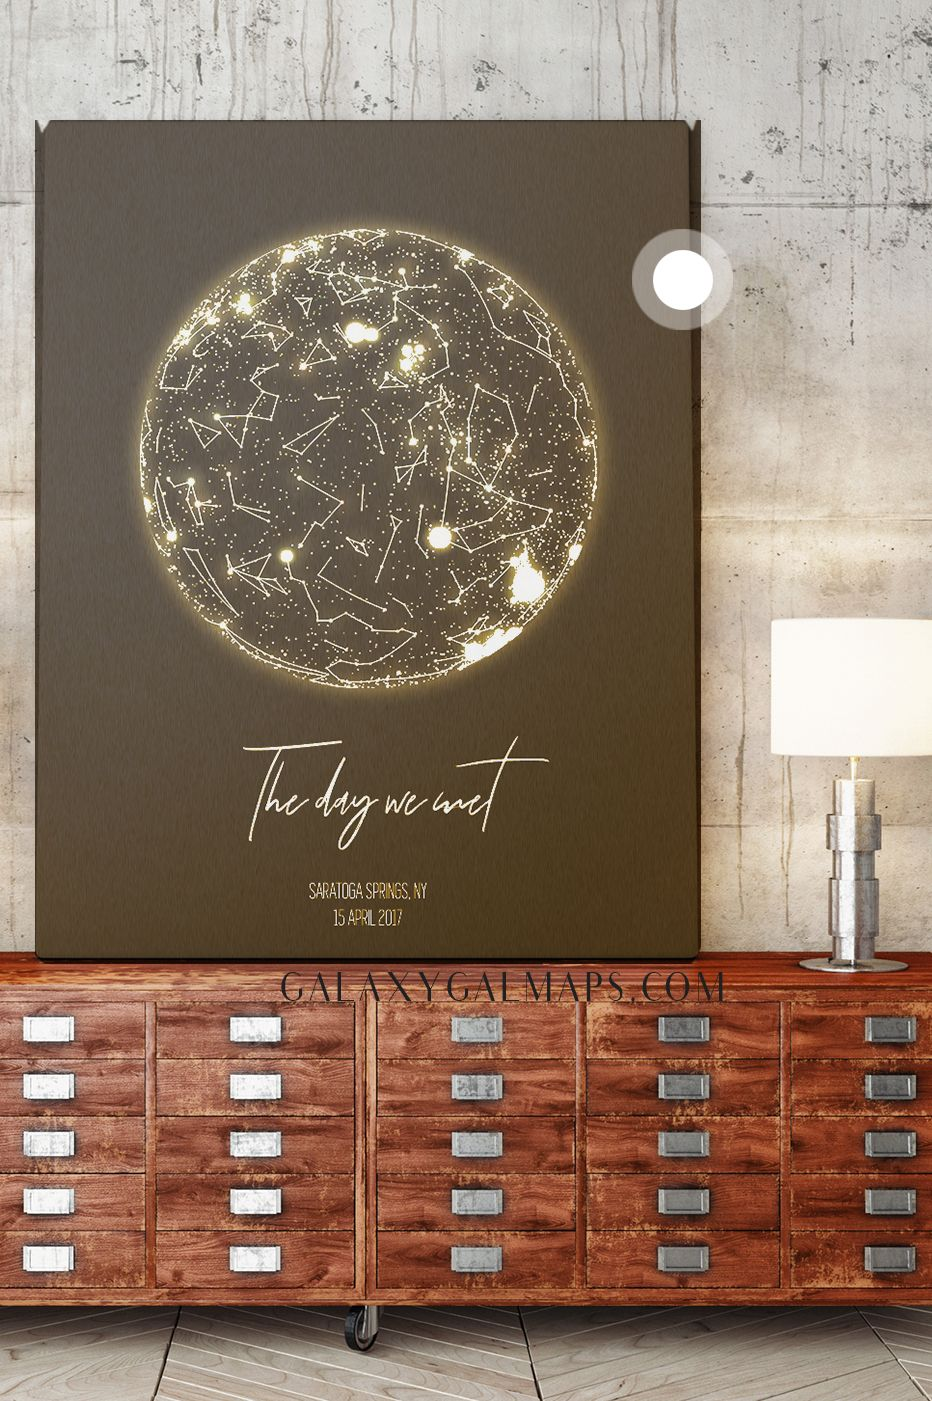 Star Map By Date And Location.Unique Sky Map For Your Date 1 Location Star Map Constellation